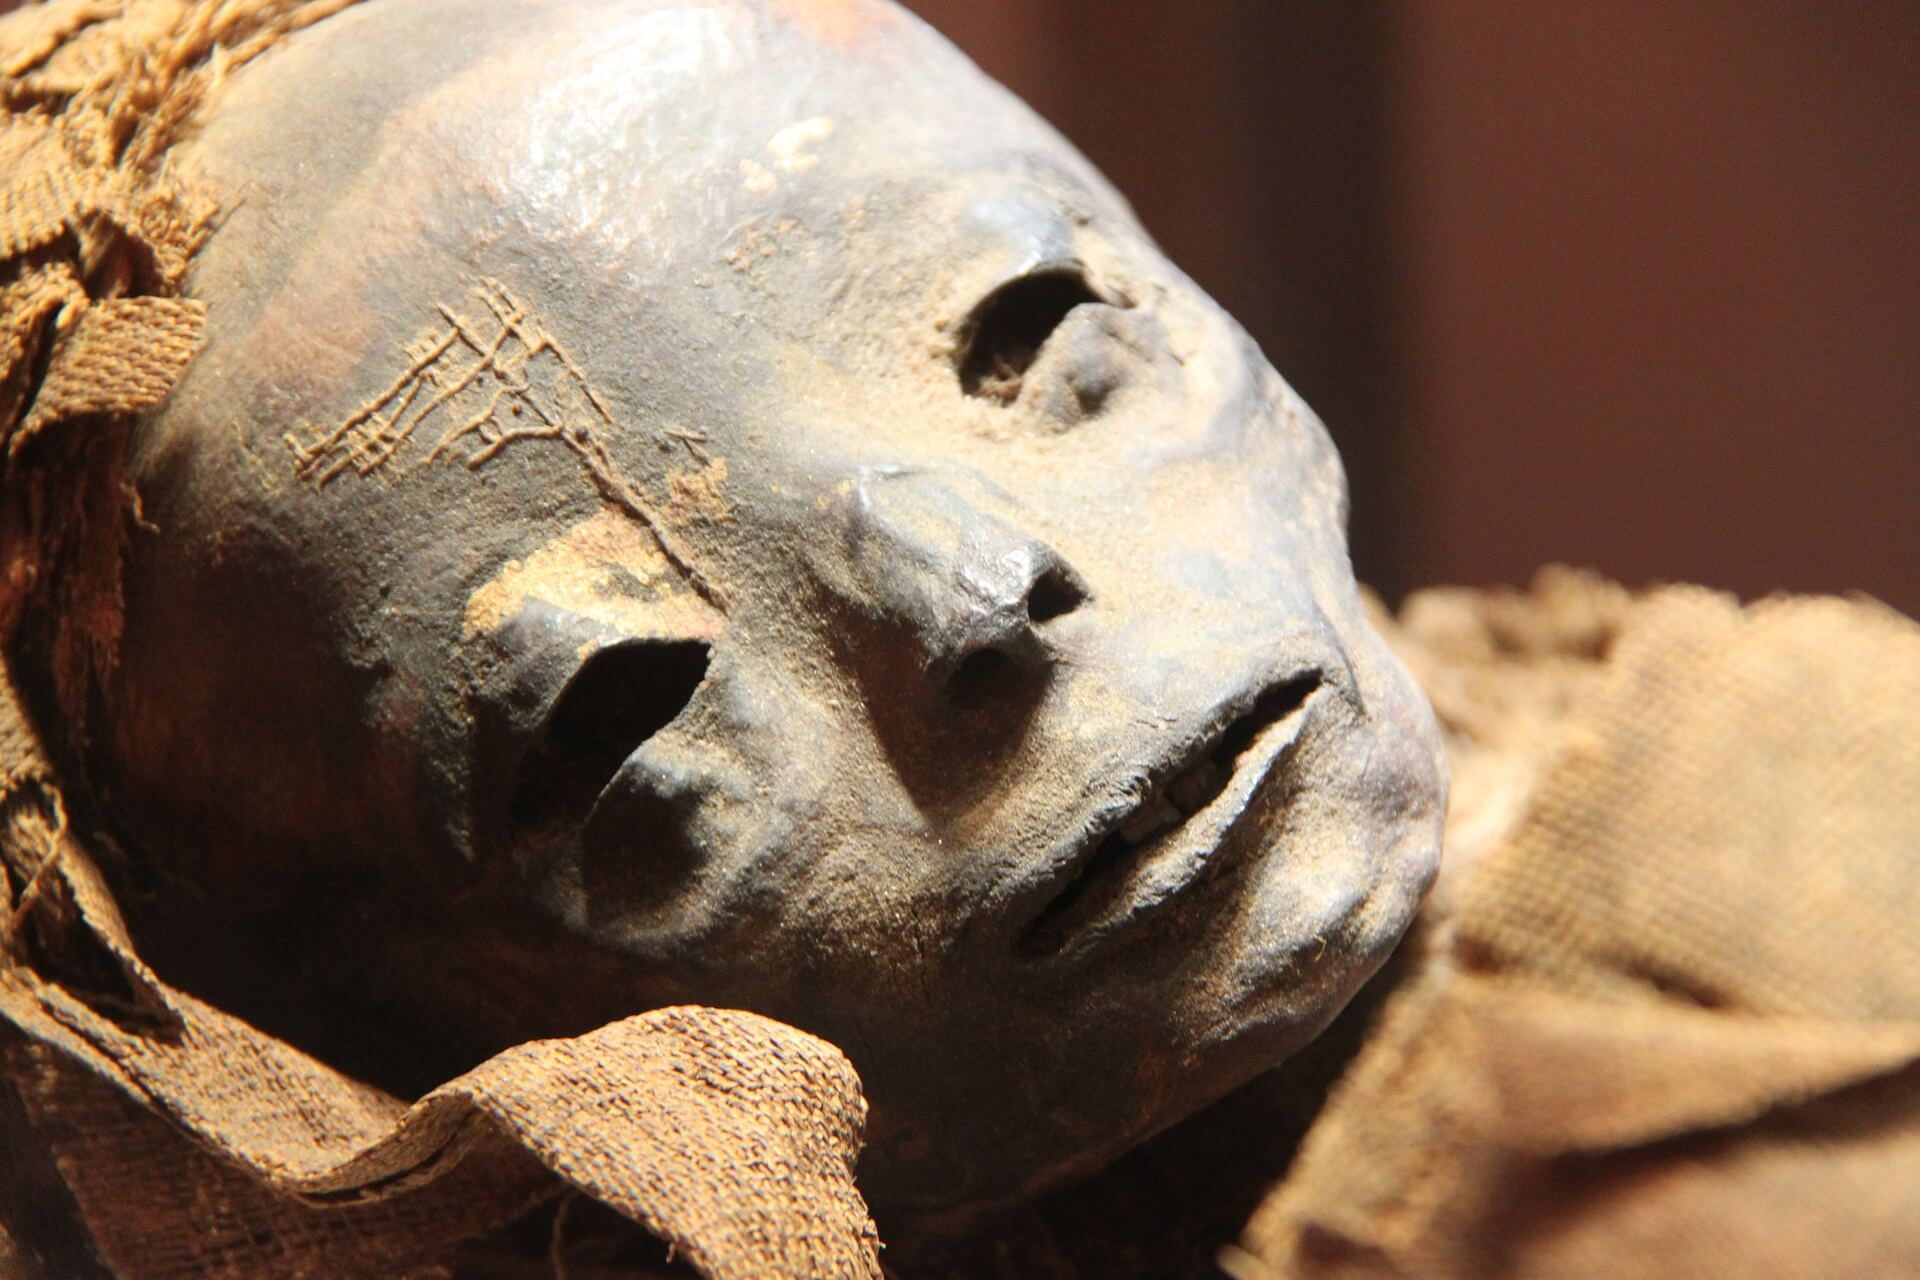 myrrh benefits Later, the ancient Egyptians began burying their dead in coffins to protect them from wild animals in the desert. However, they realised that bodies placed in coffins decayed when they were not exposed to the hot, dry sand of the desert.